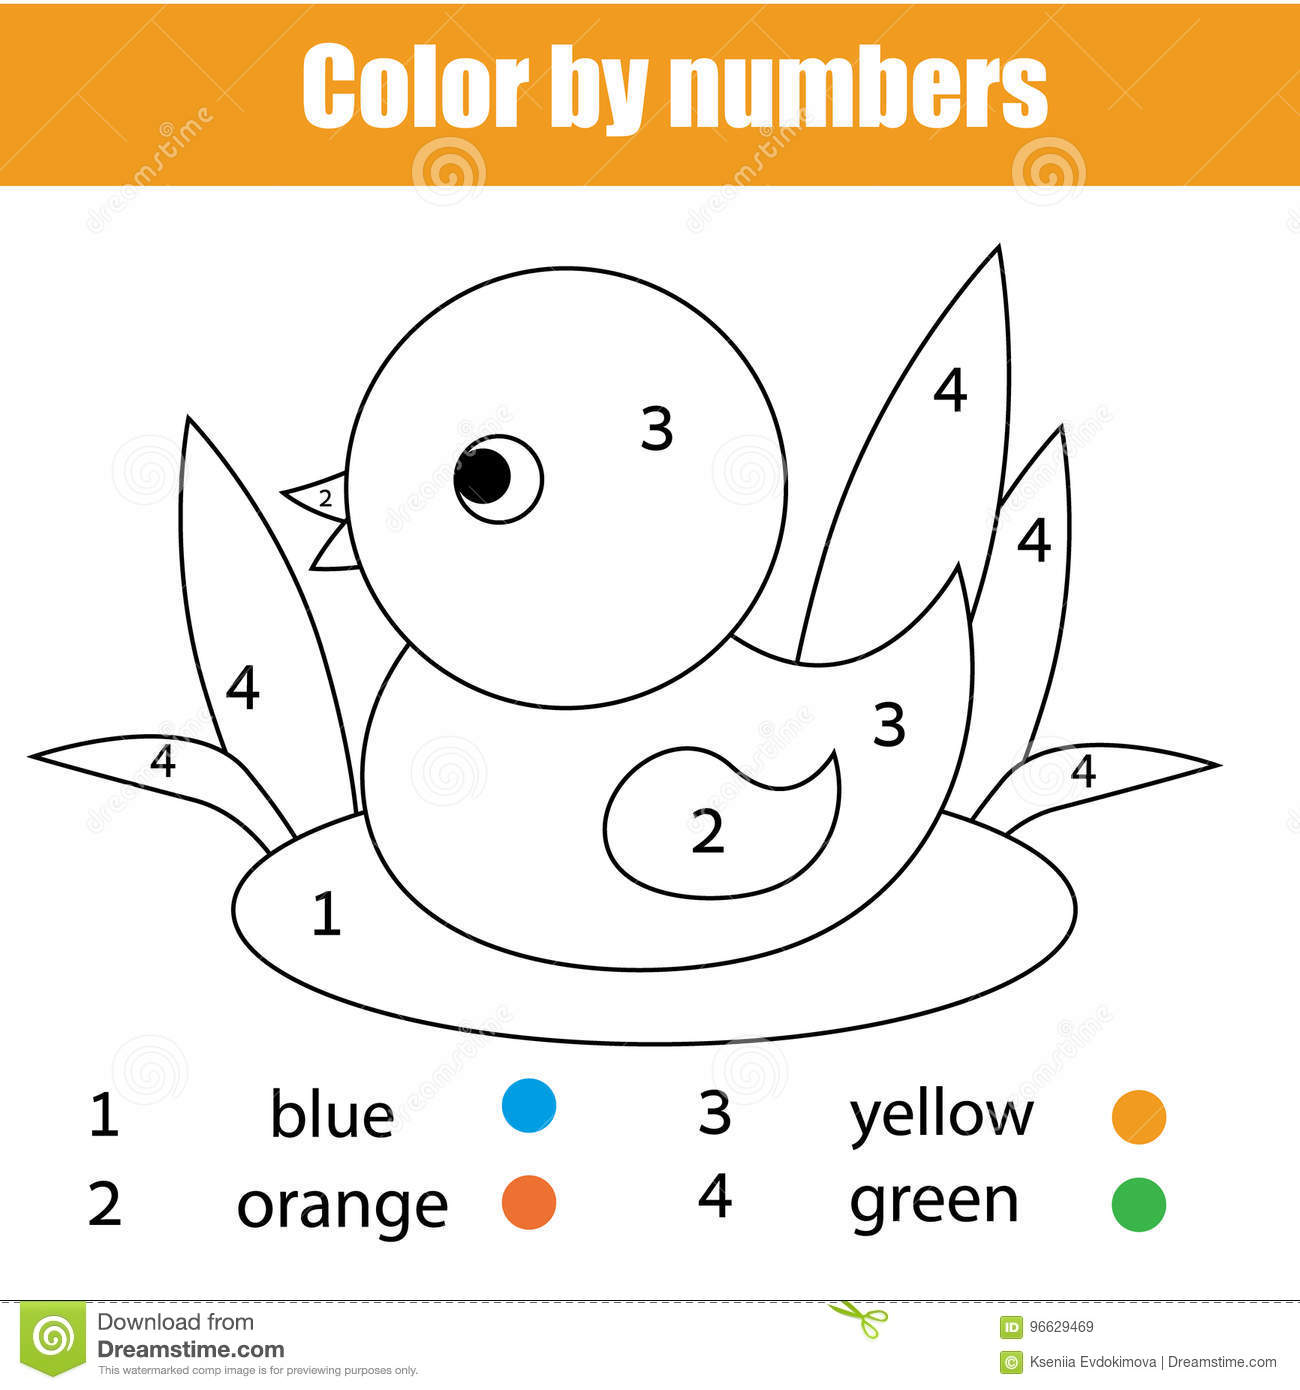 Coloring page with duck bird color by numbers educational children game drawing kids activity printable sheet animals theme